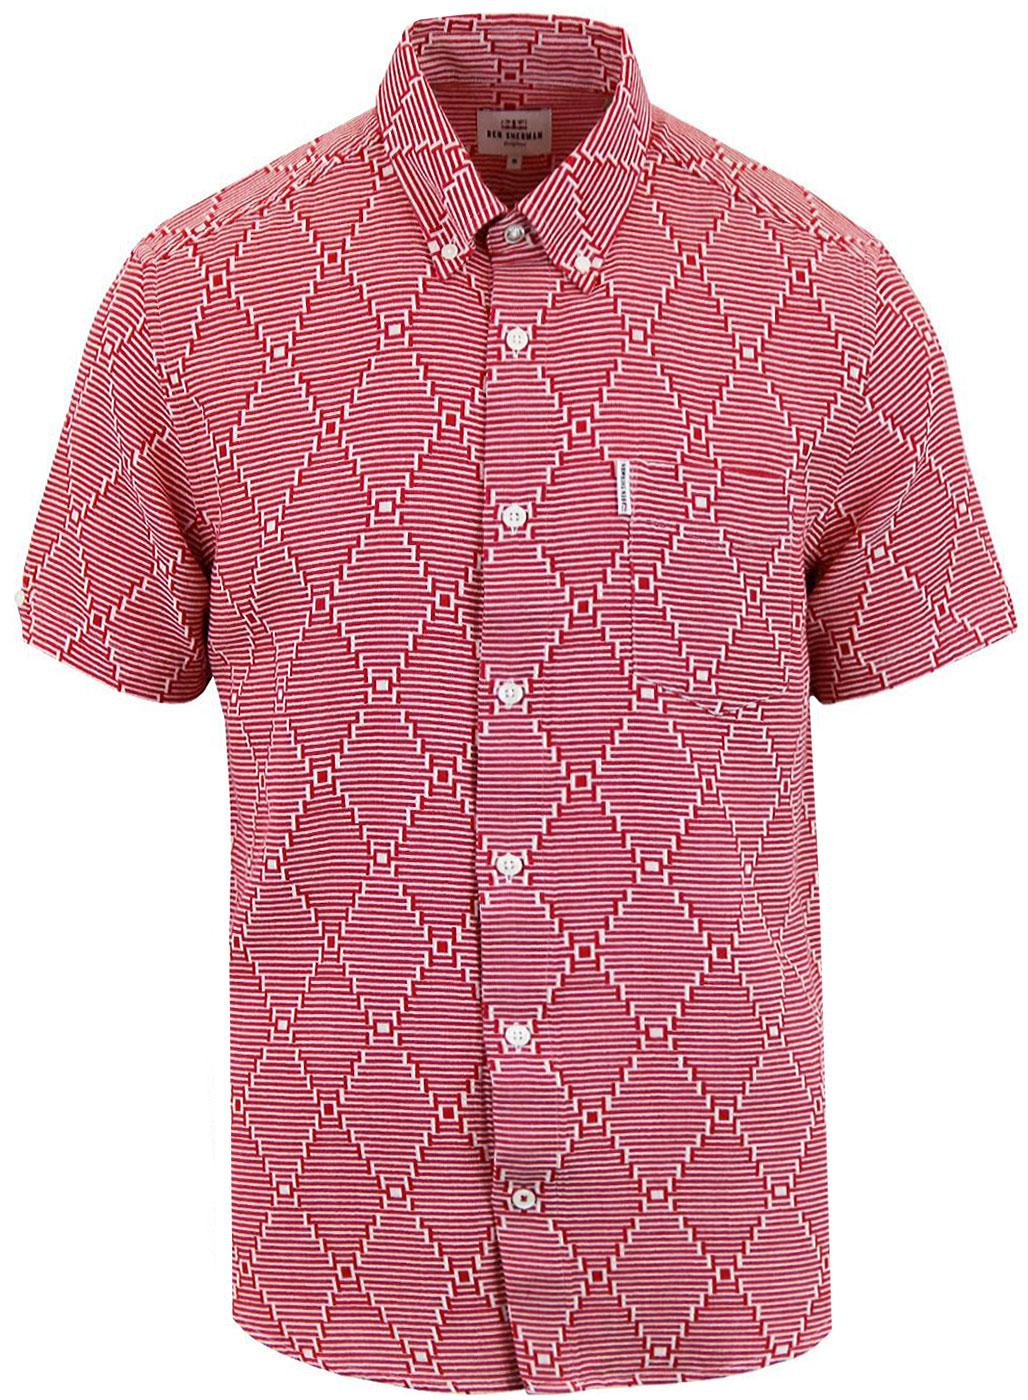 BEN SHERMAN 60s Mod Warped Stripe Op Art Shirt RED